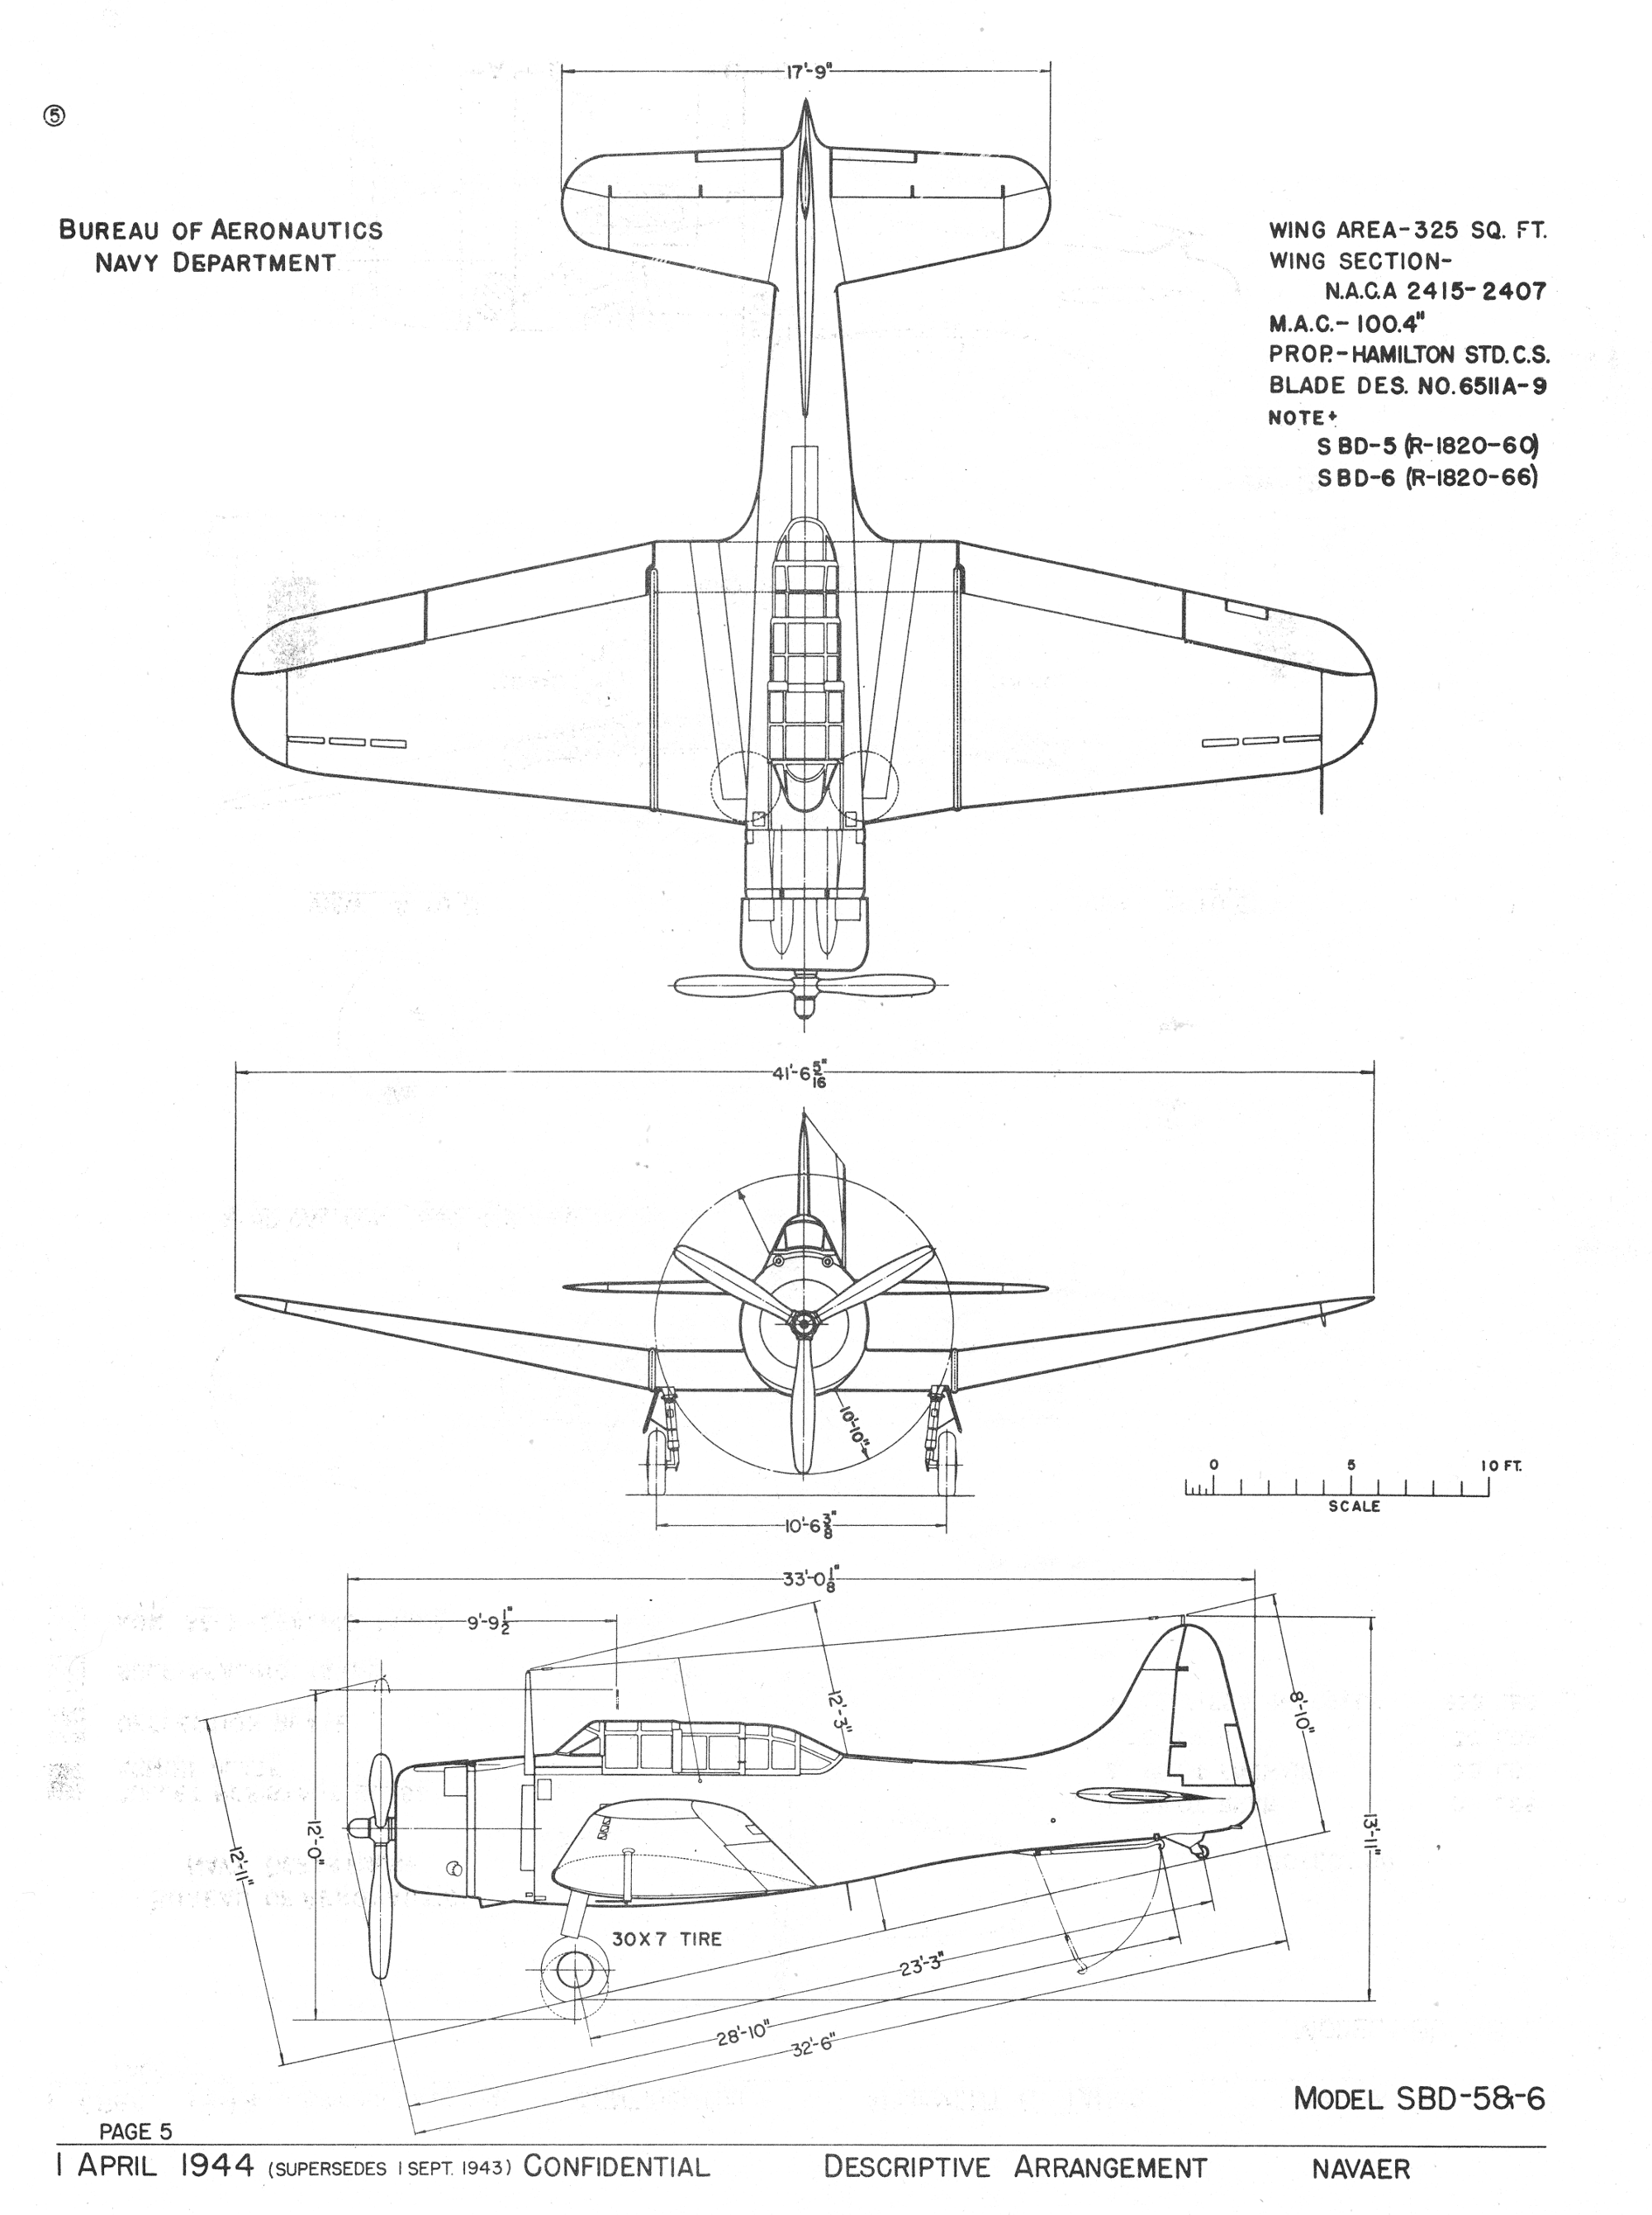 2000x2681 My Drawings Of The Sbd The Top View And Other Updates Airplanes